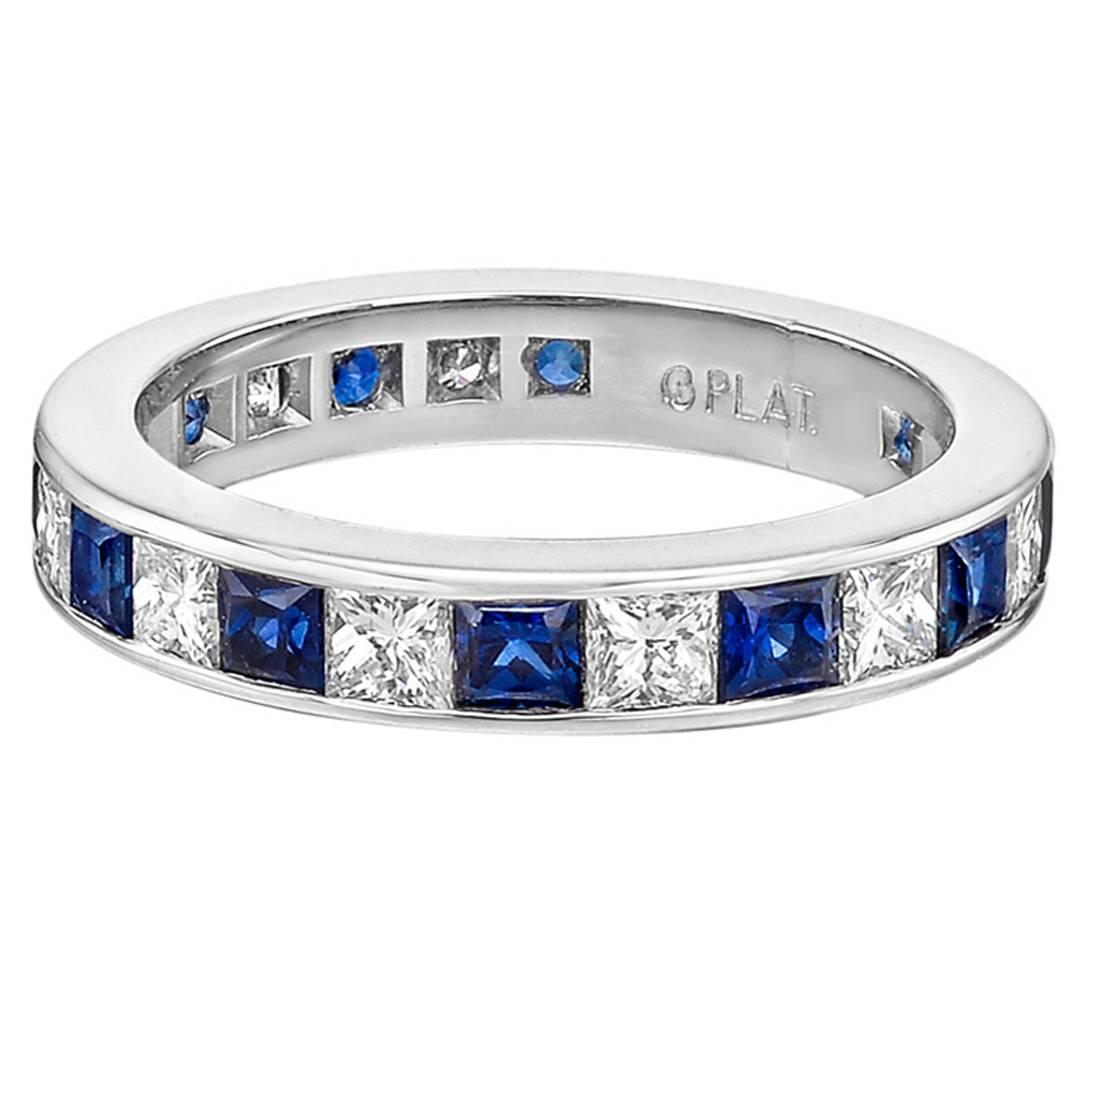 mari ana sapphire bands ortega products eternity band anniversary